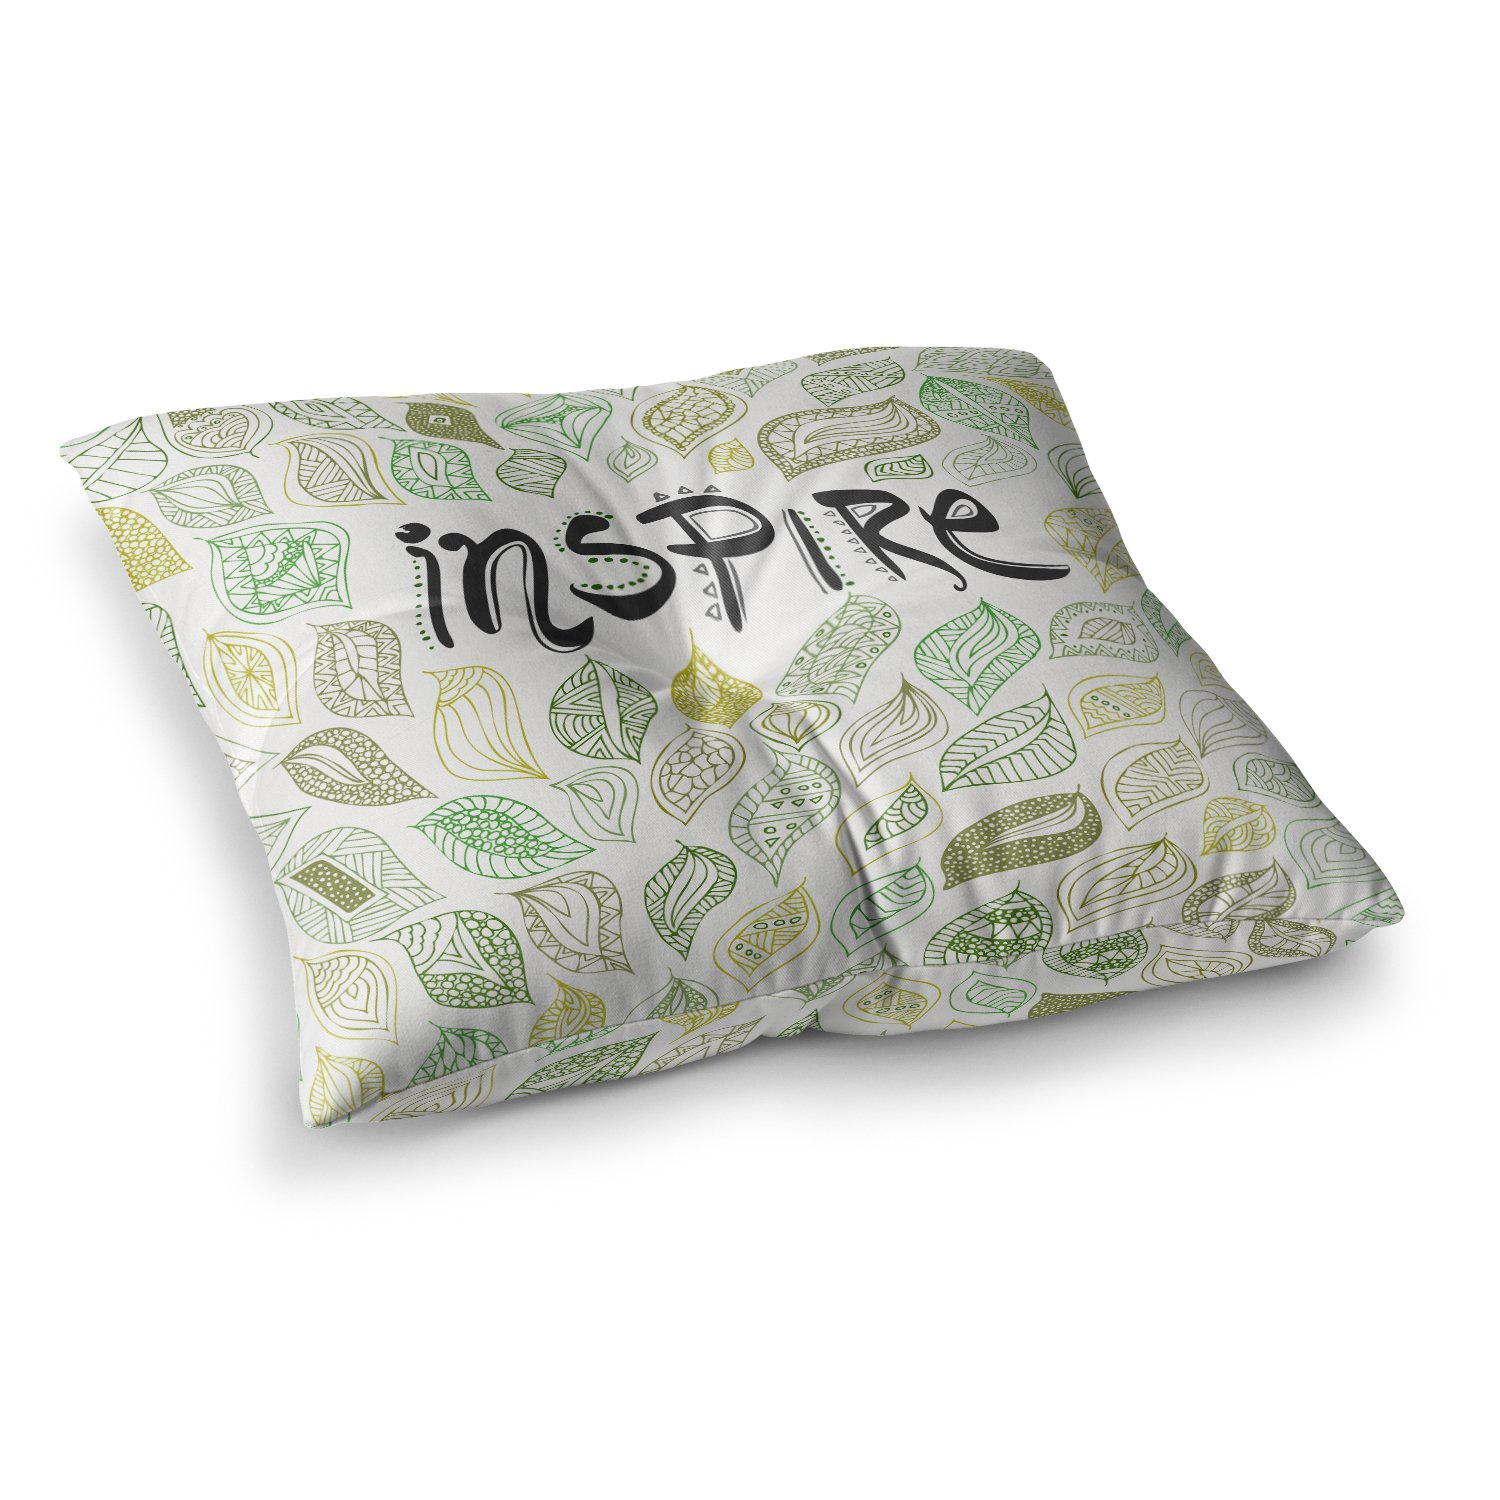 Kess InHouse Pom Graphic Design Inspire Nature Green Yellow 26 x 26 Square Floor Pillow